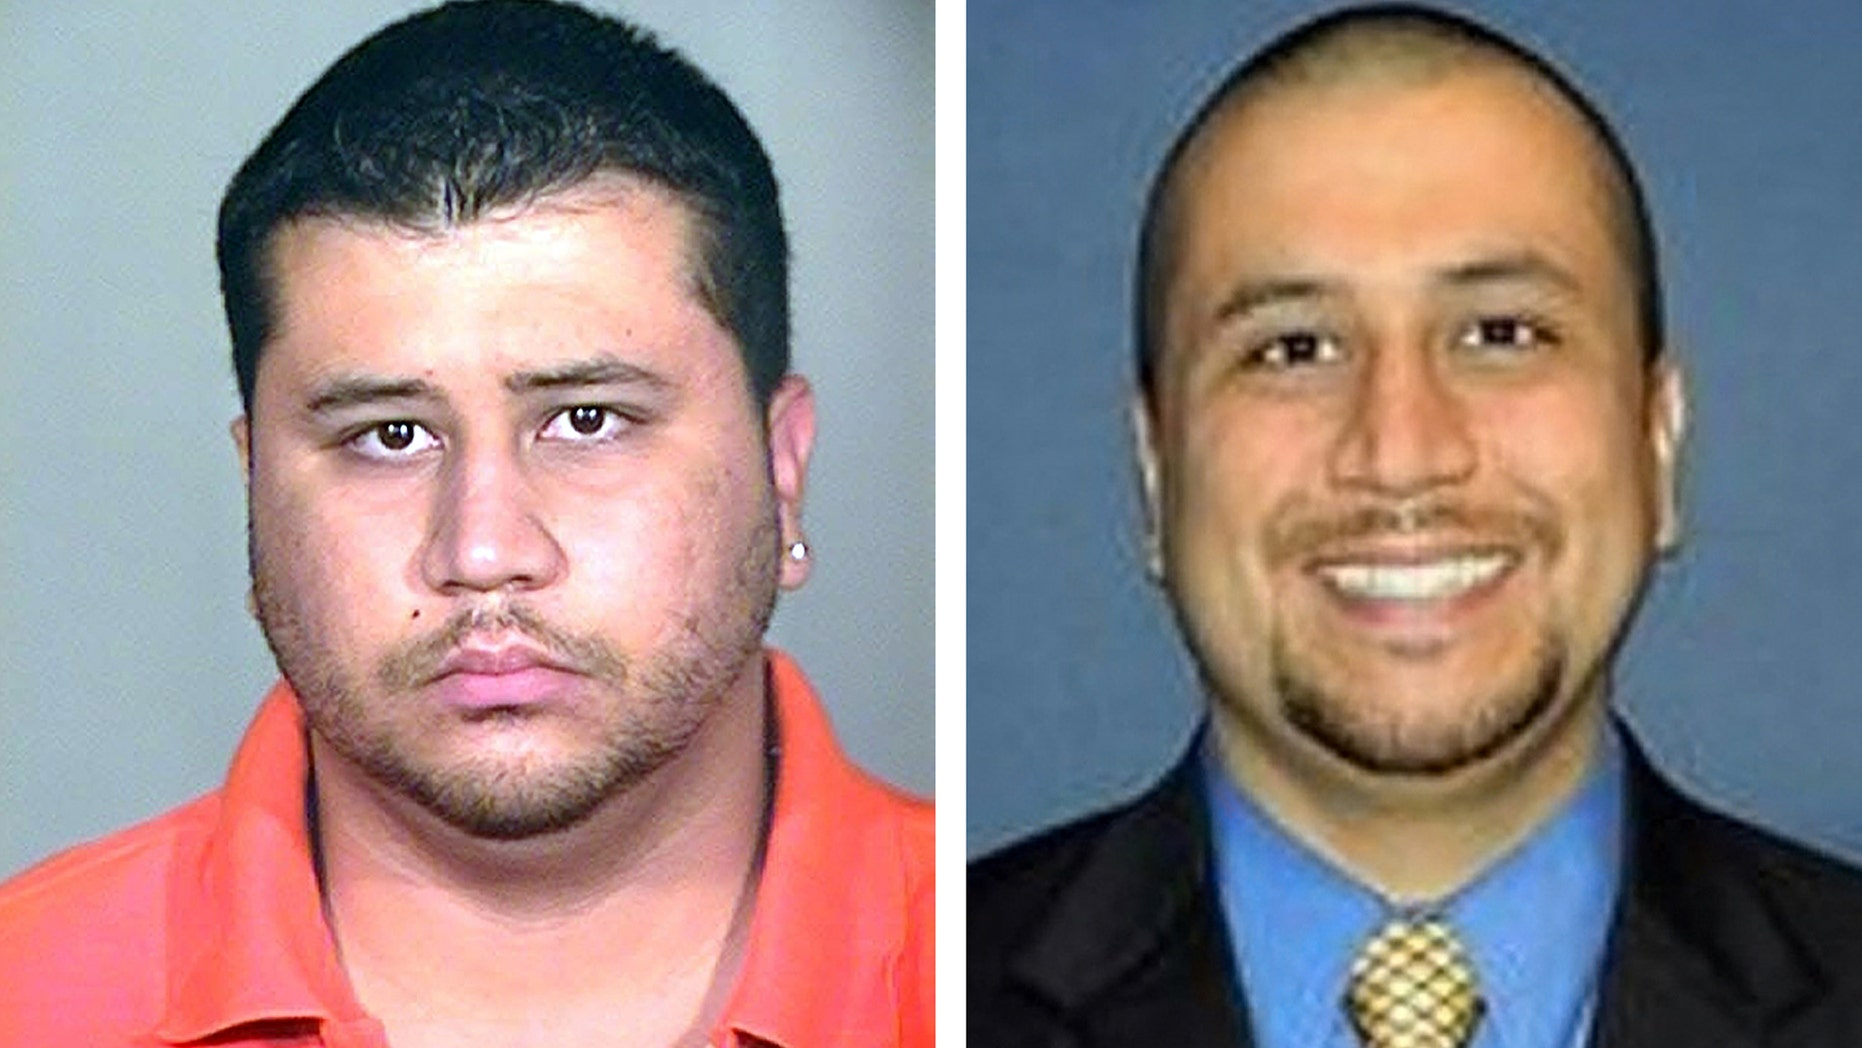 This photo combo shows George Zimmerman. At left is a 2005 booking photo provided by the Orange County Jail via The Miami Herald, and at right is an undated but recent photo of Zimmerman taken from the Orlando Sentinel's website showing Zimmerman, according to the paper. Zimmerman, a neighborhood watch volunteer in the town of Sanford, Fla., told police he shot unarmed 17-year-old Trayvon Martin on Feb. 26. (AP Photo)